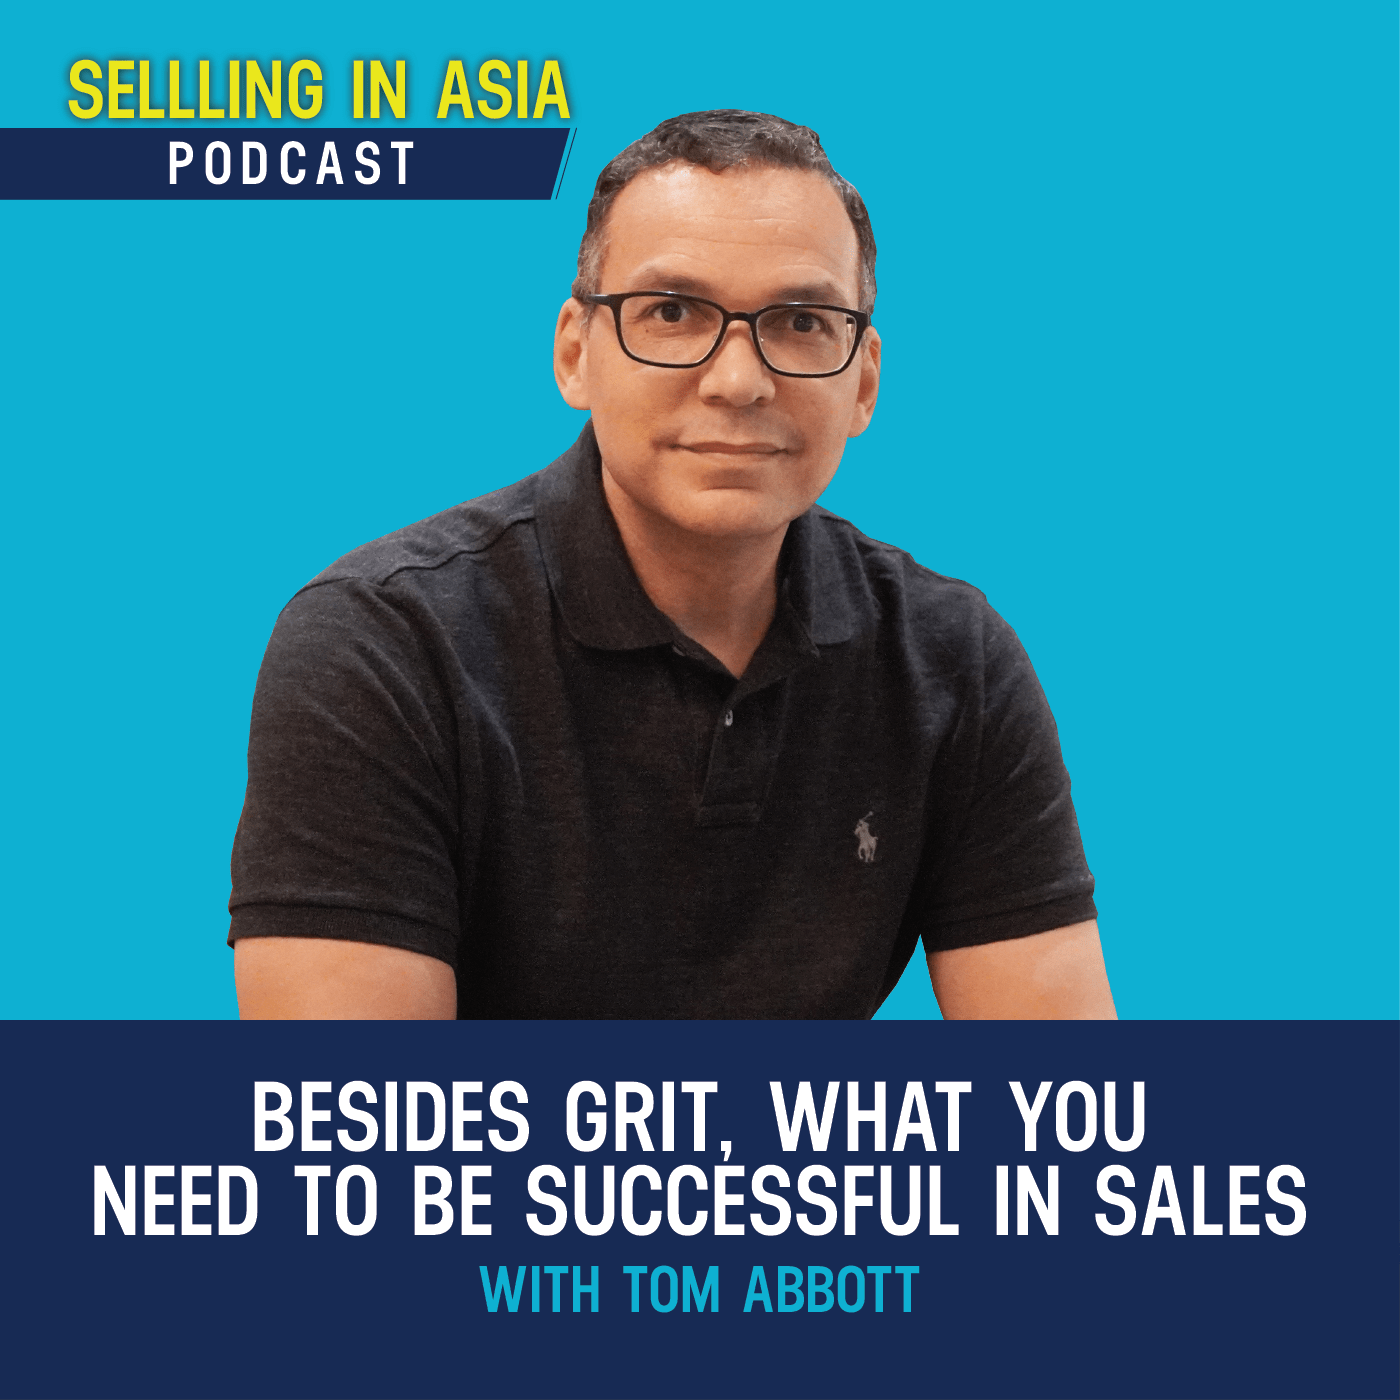 Besides Grit, What You Need to be Successful in Sales